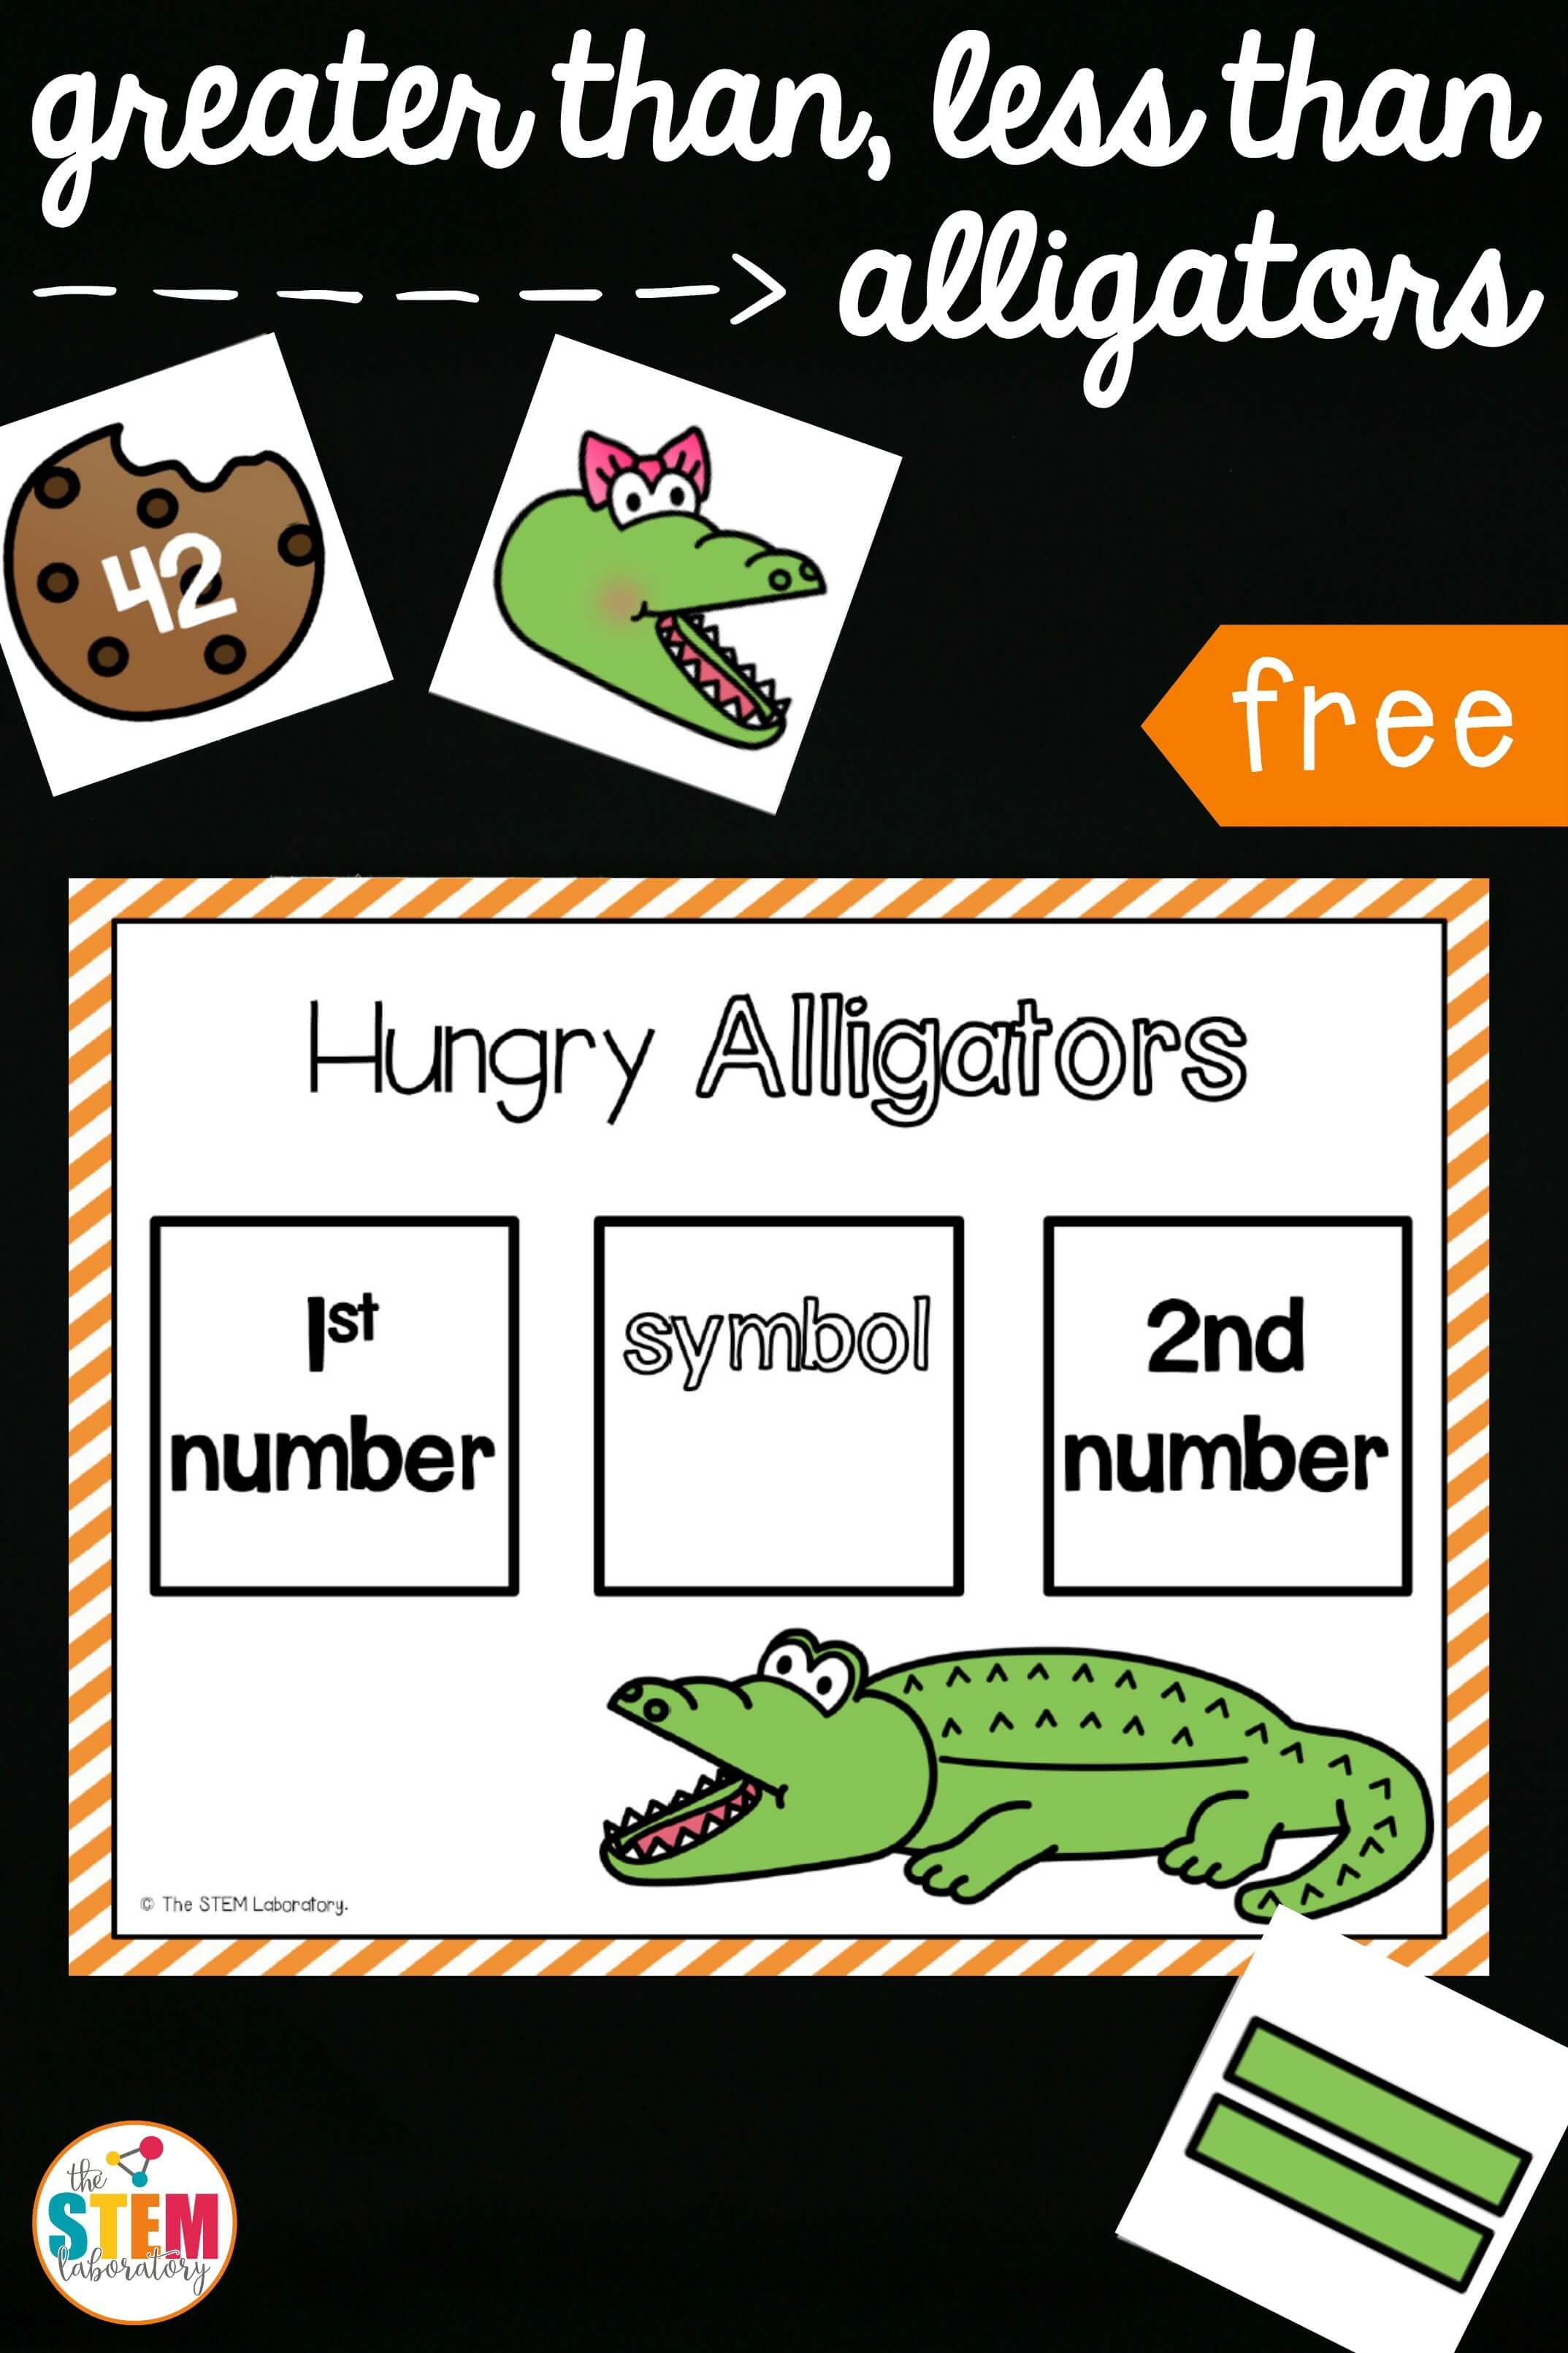 picture relating to Greater Than Less Than Alligator Printable referred to as Better Than, Fewer Than Alligators - The Stem Laboratory